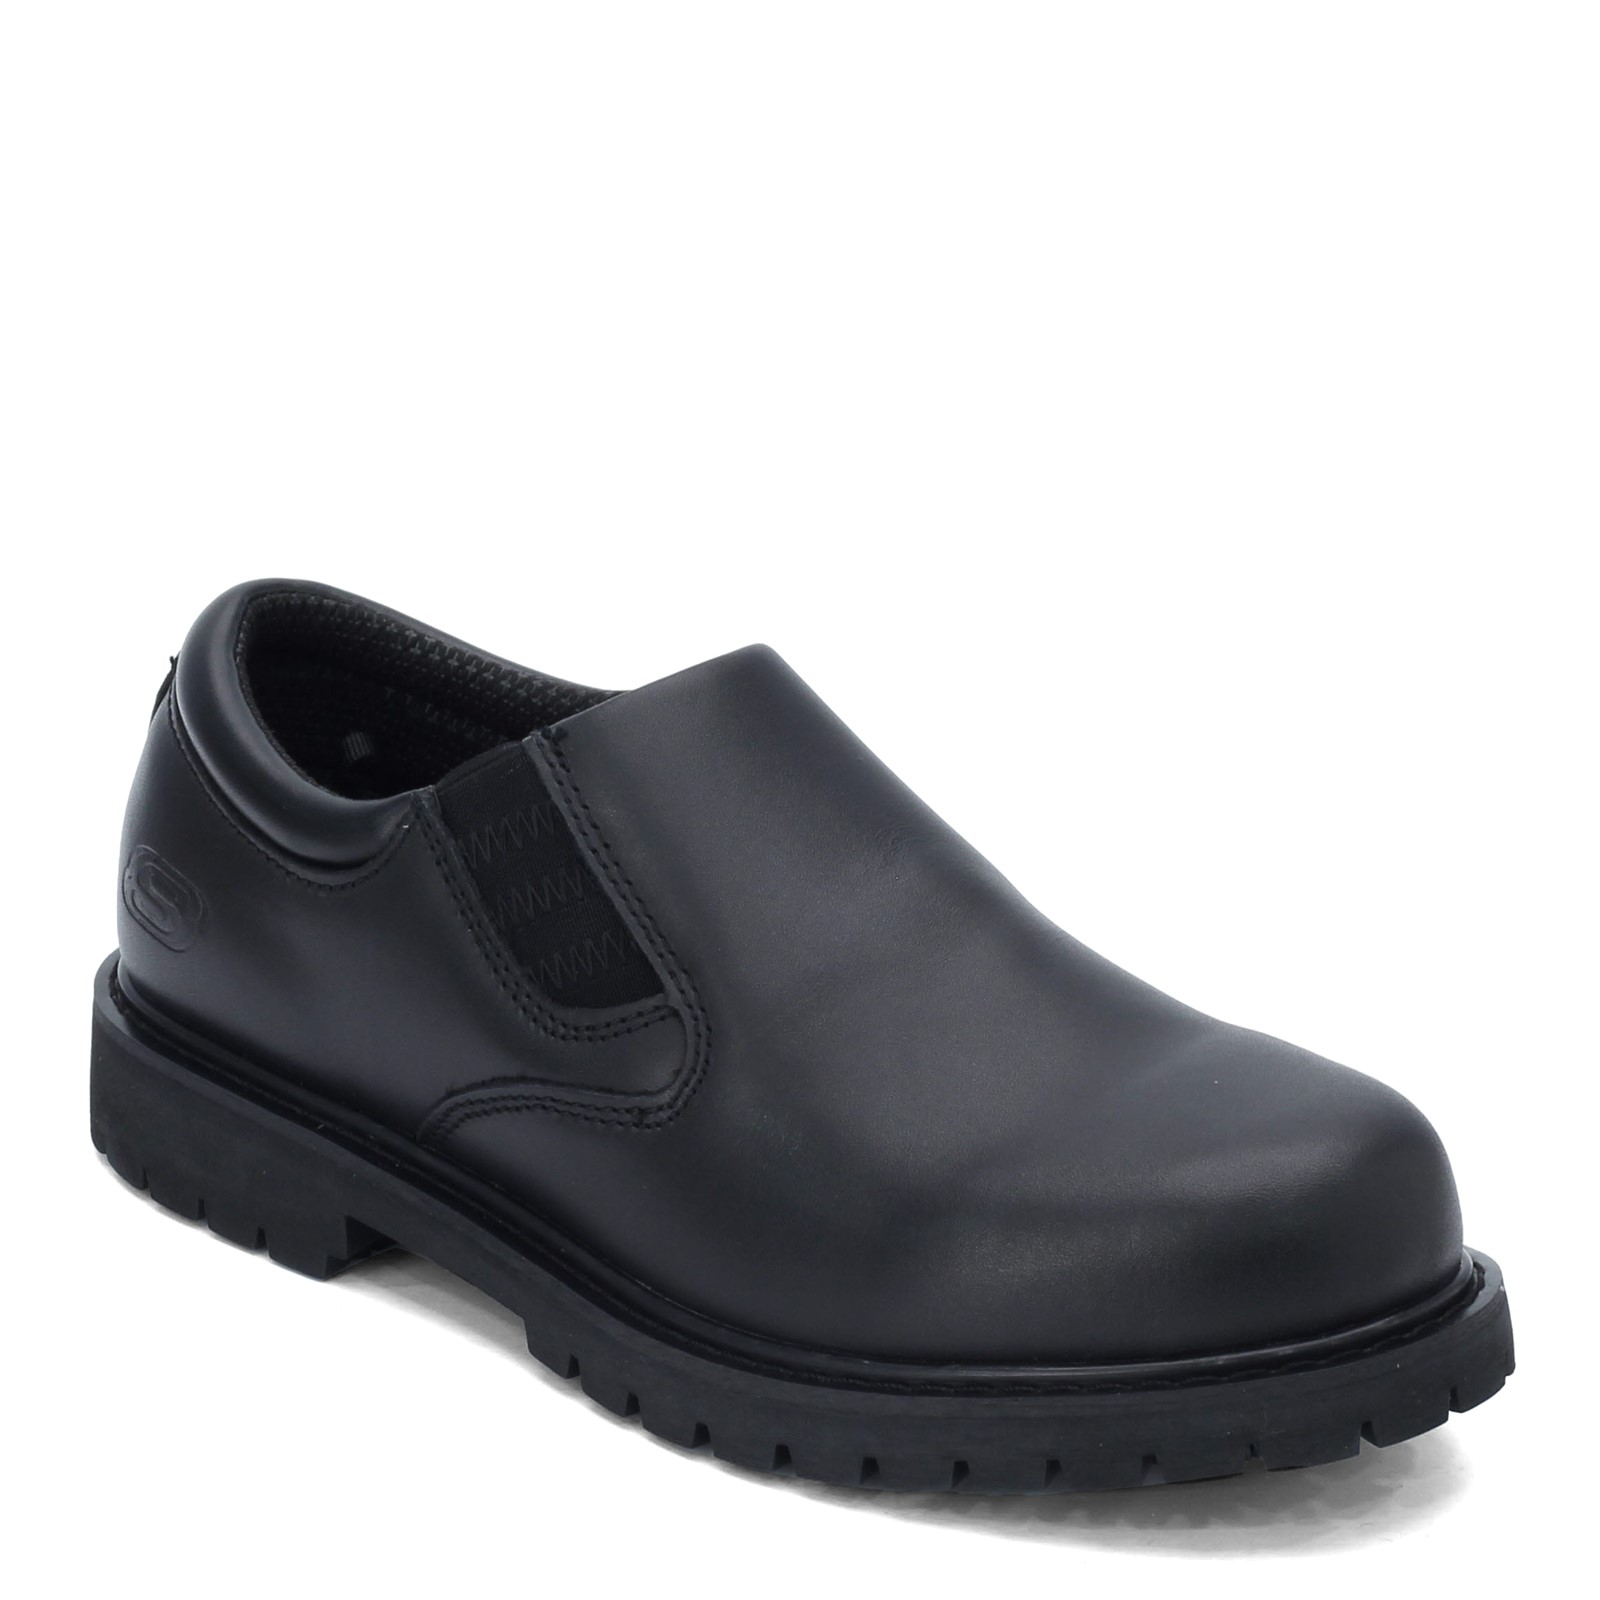 Men's Skechers, Cottonwood Elks Slip-On Work Shoe